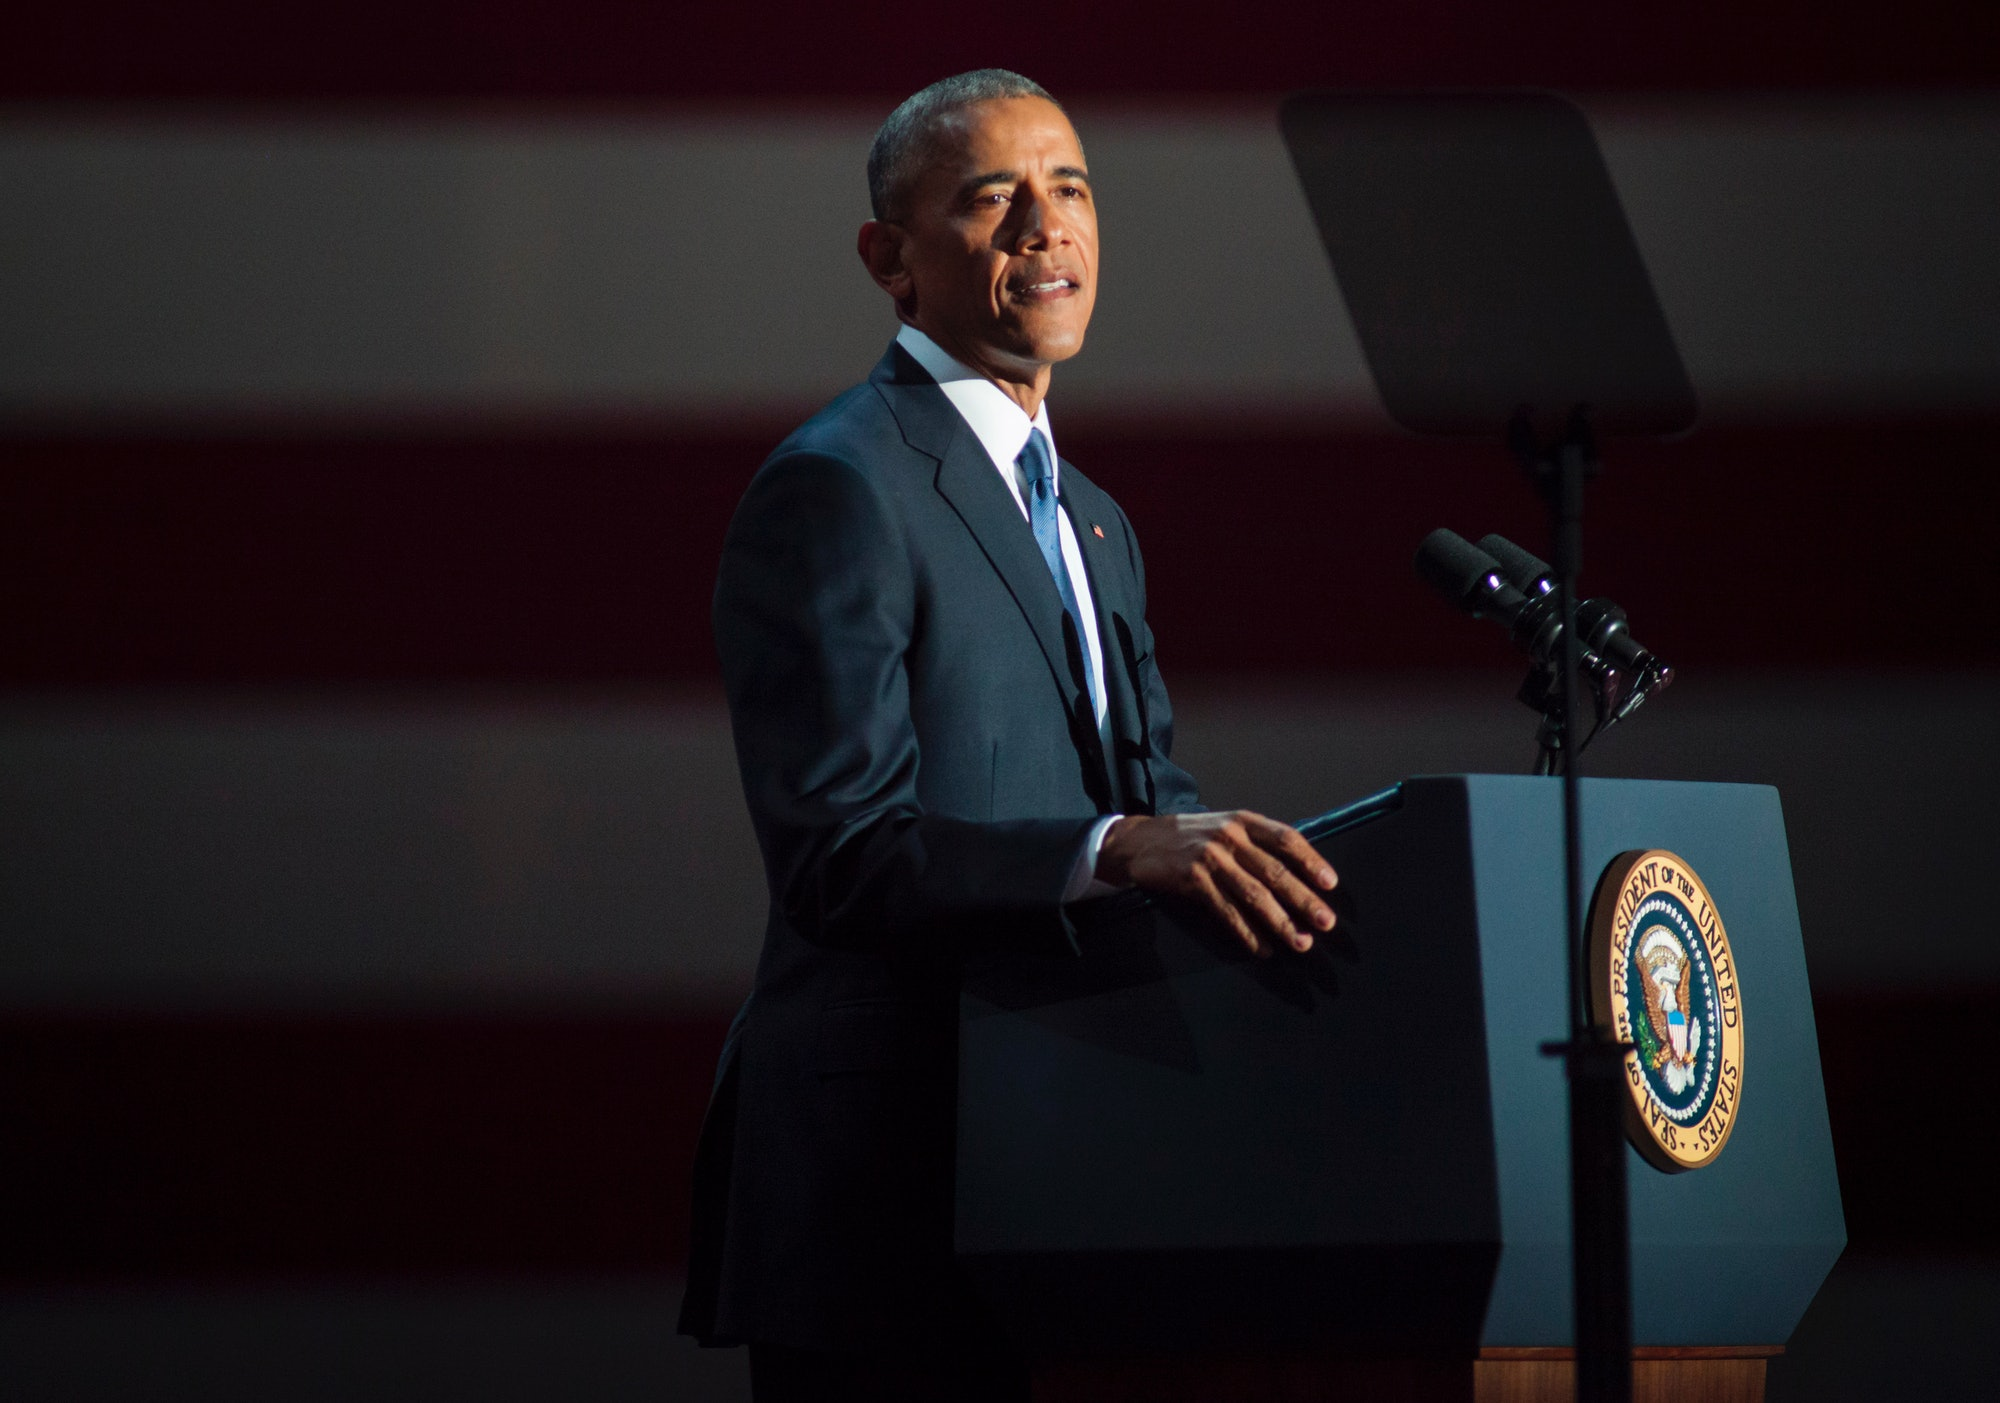 CHICAGO, IL - JANUARY 10: U.S. President Barack Obama speaks to supporters during his farewell speech at McCormick Place on January 10, 2017 in Chicago, Illinois. Obama addressed the nation in what is expected to be his last trip outside Washington as president. President-elect Donald Trump will be sworn in as the 45th president on January 20. (Photo by Darren Hauck/Getty Images)